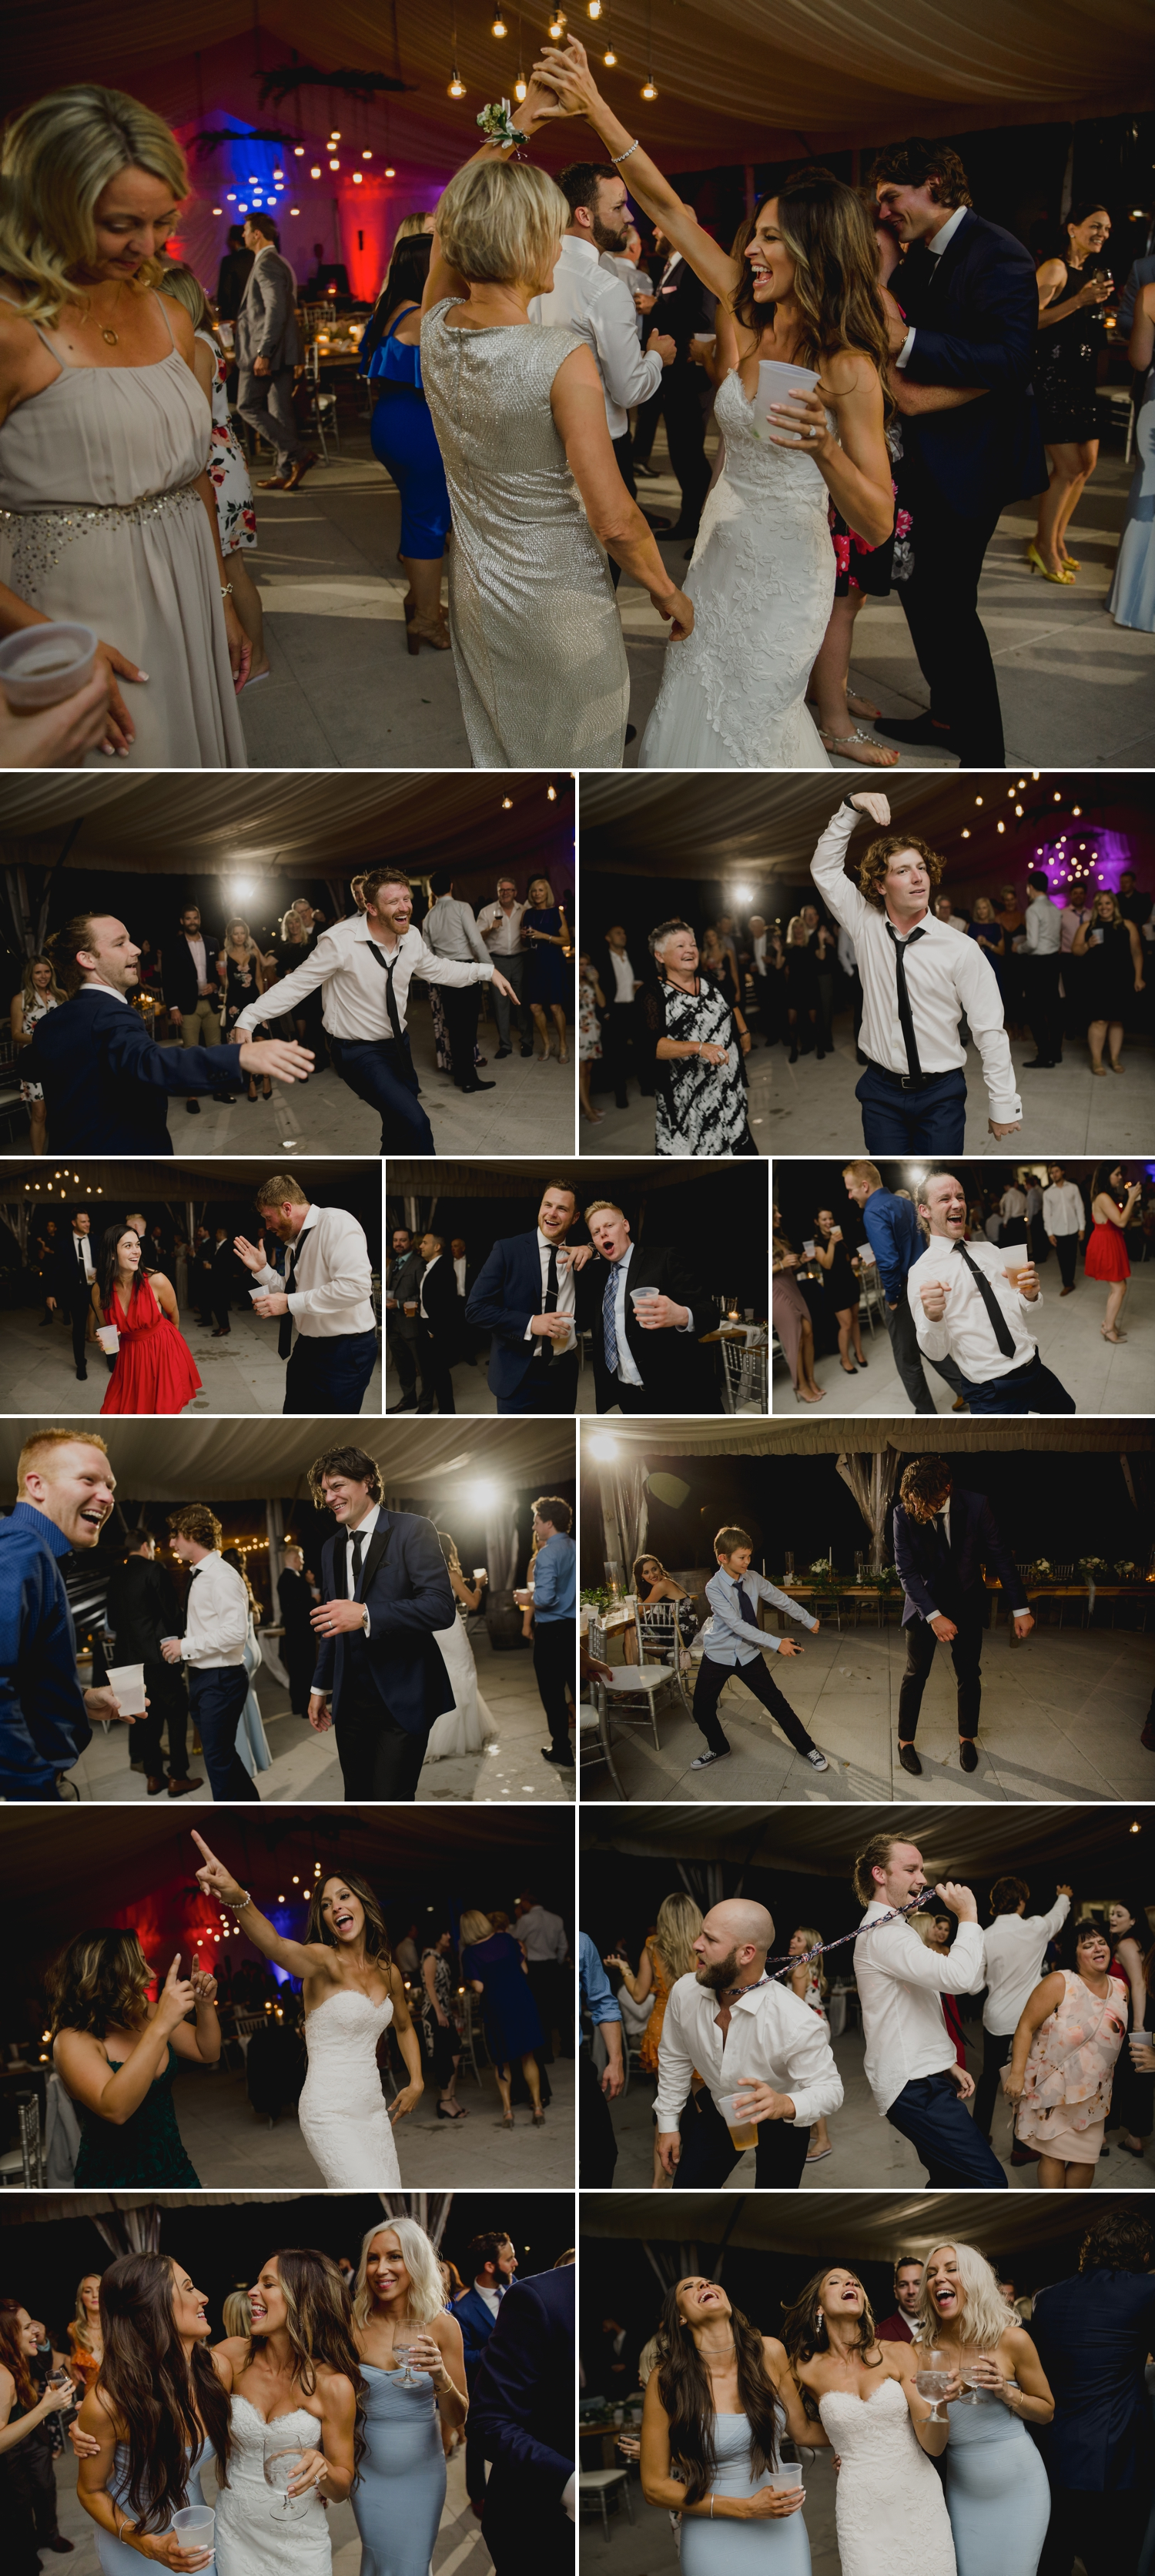 photos of candid moments on the dance floor during a wedding reception at the ravine vineyard in niagara on the lake ontario